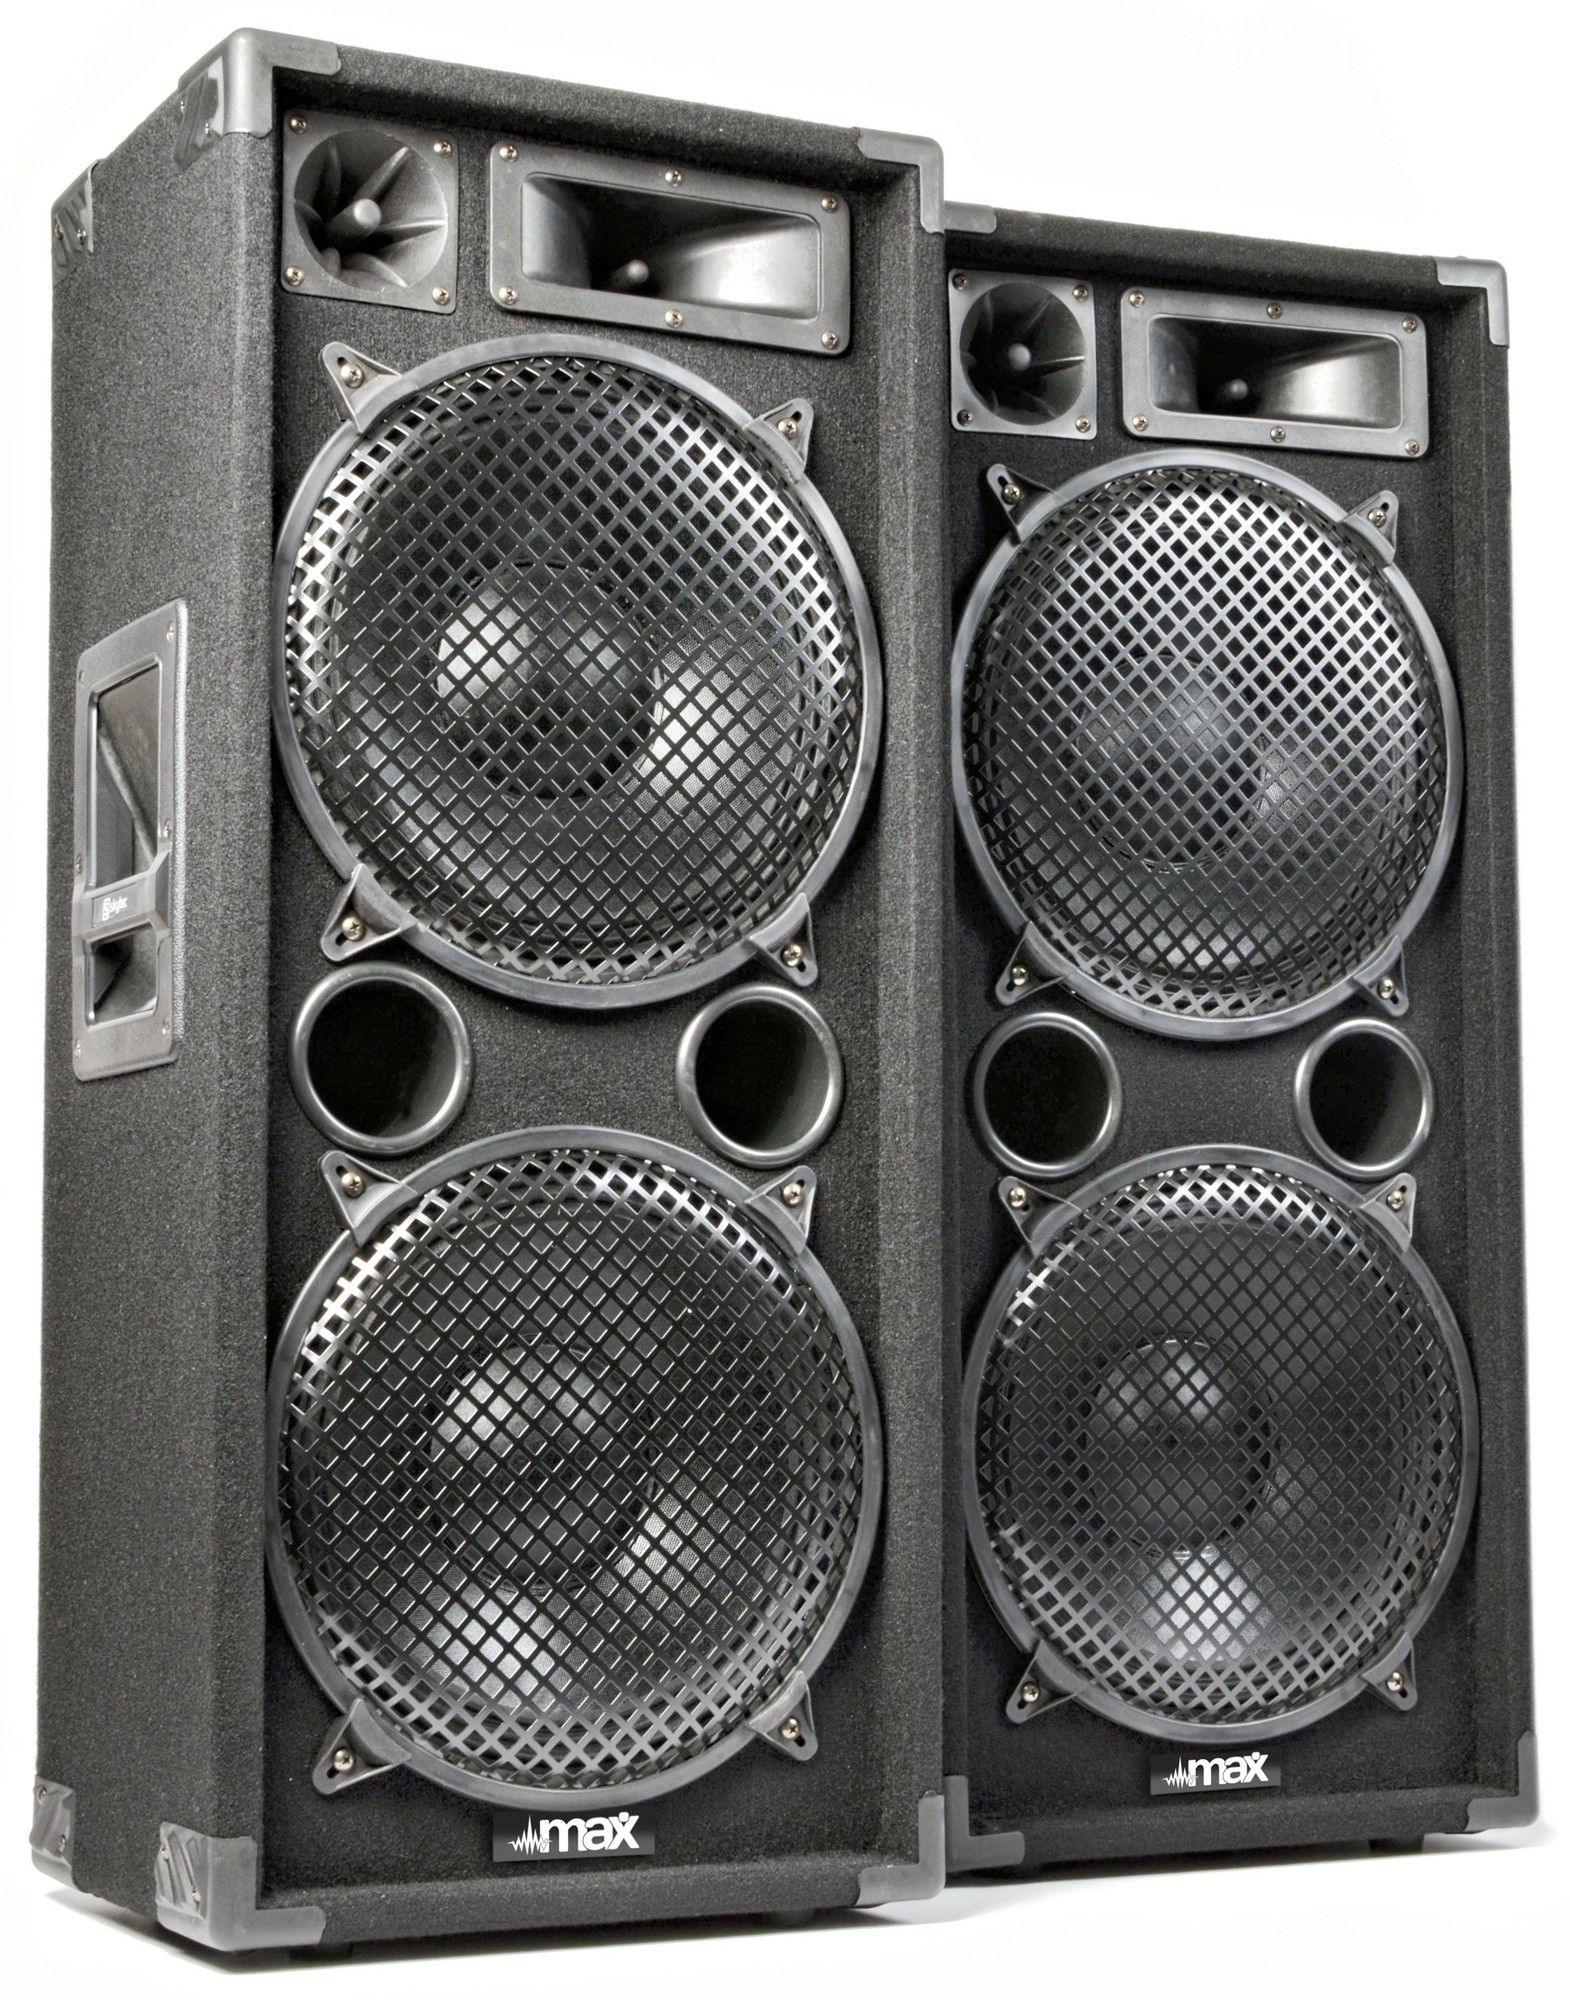 MAX MAX212 2800W Disco Speakerset 2 x 12